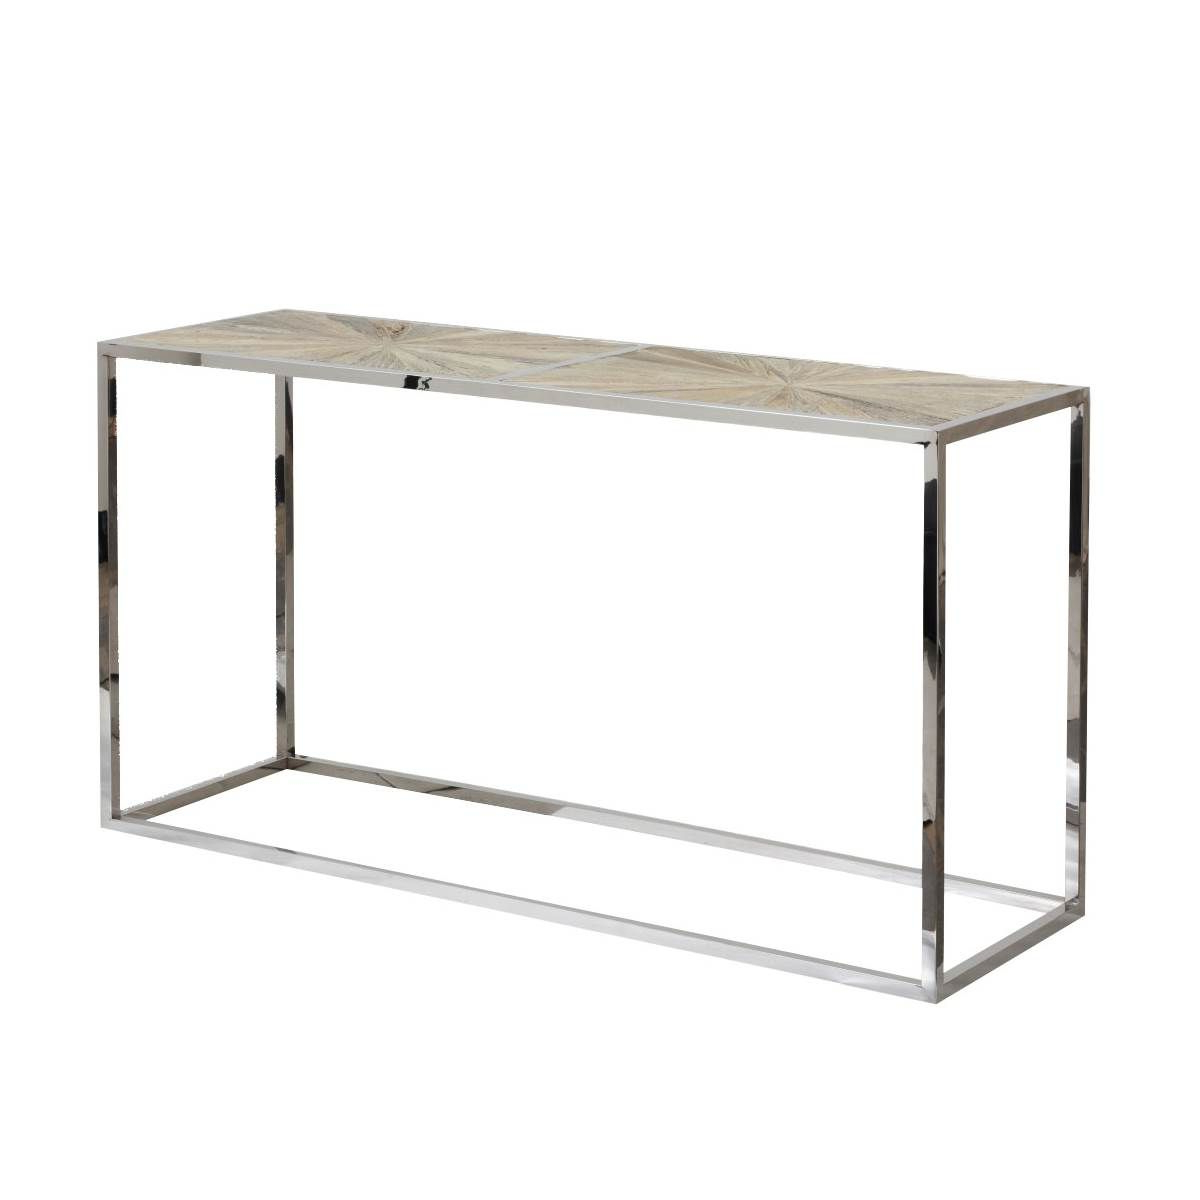 Parquet Console Table | Marshall | Pinterest Throughout Parsons Concrete Top & Stainless Steel Base 48X16 Console Tables (View 13 of 20)